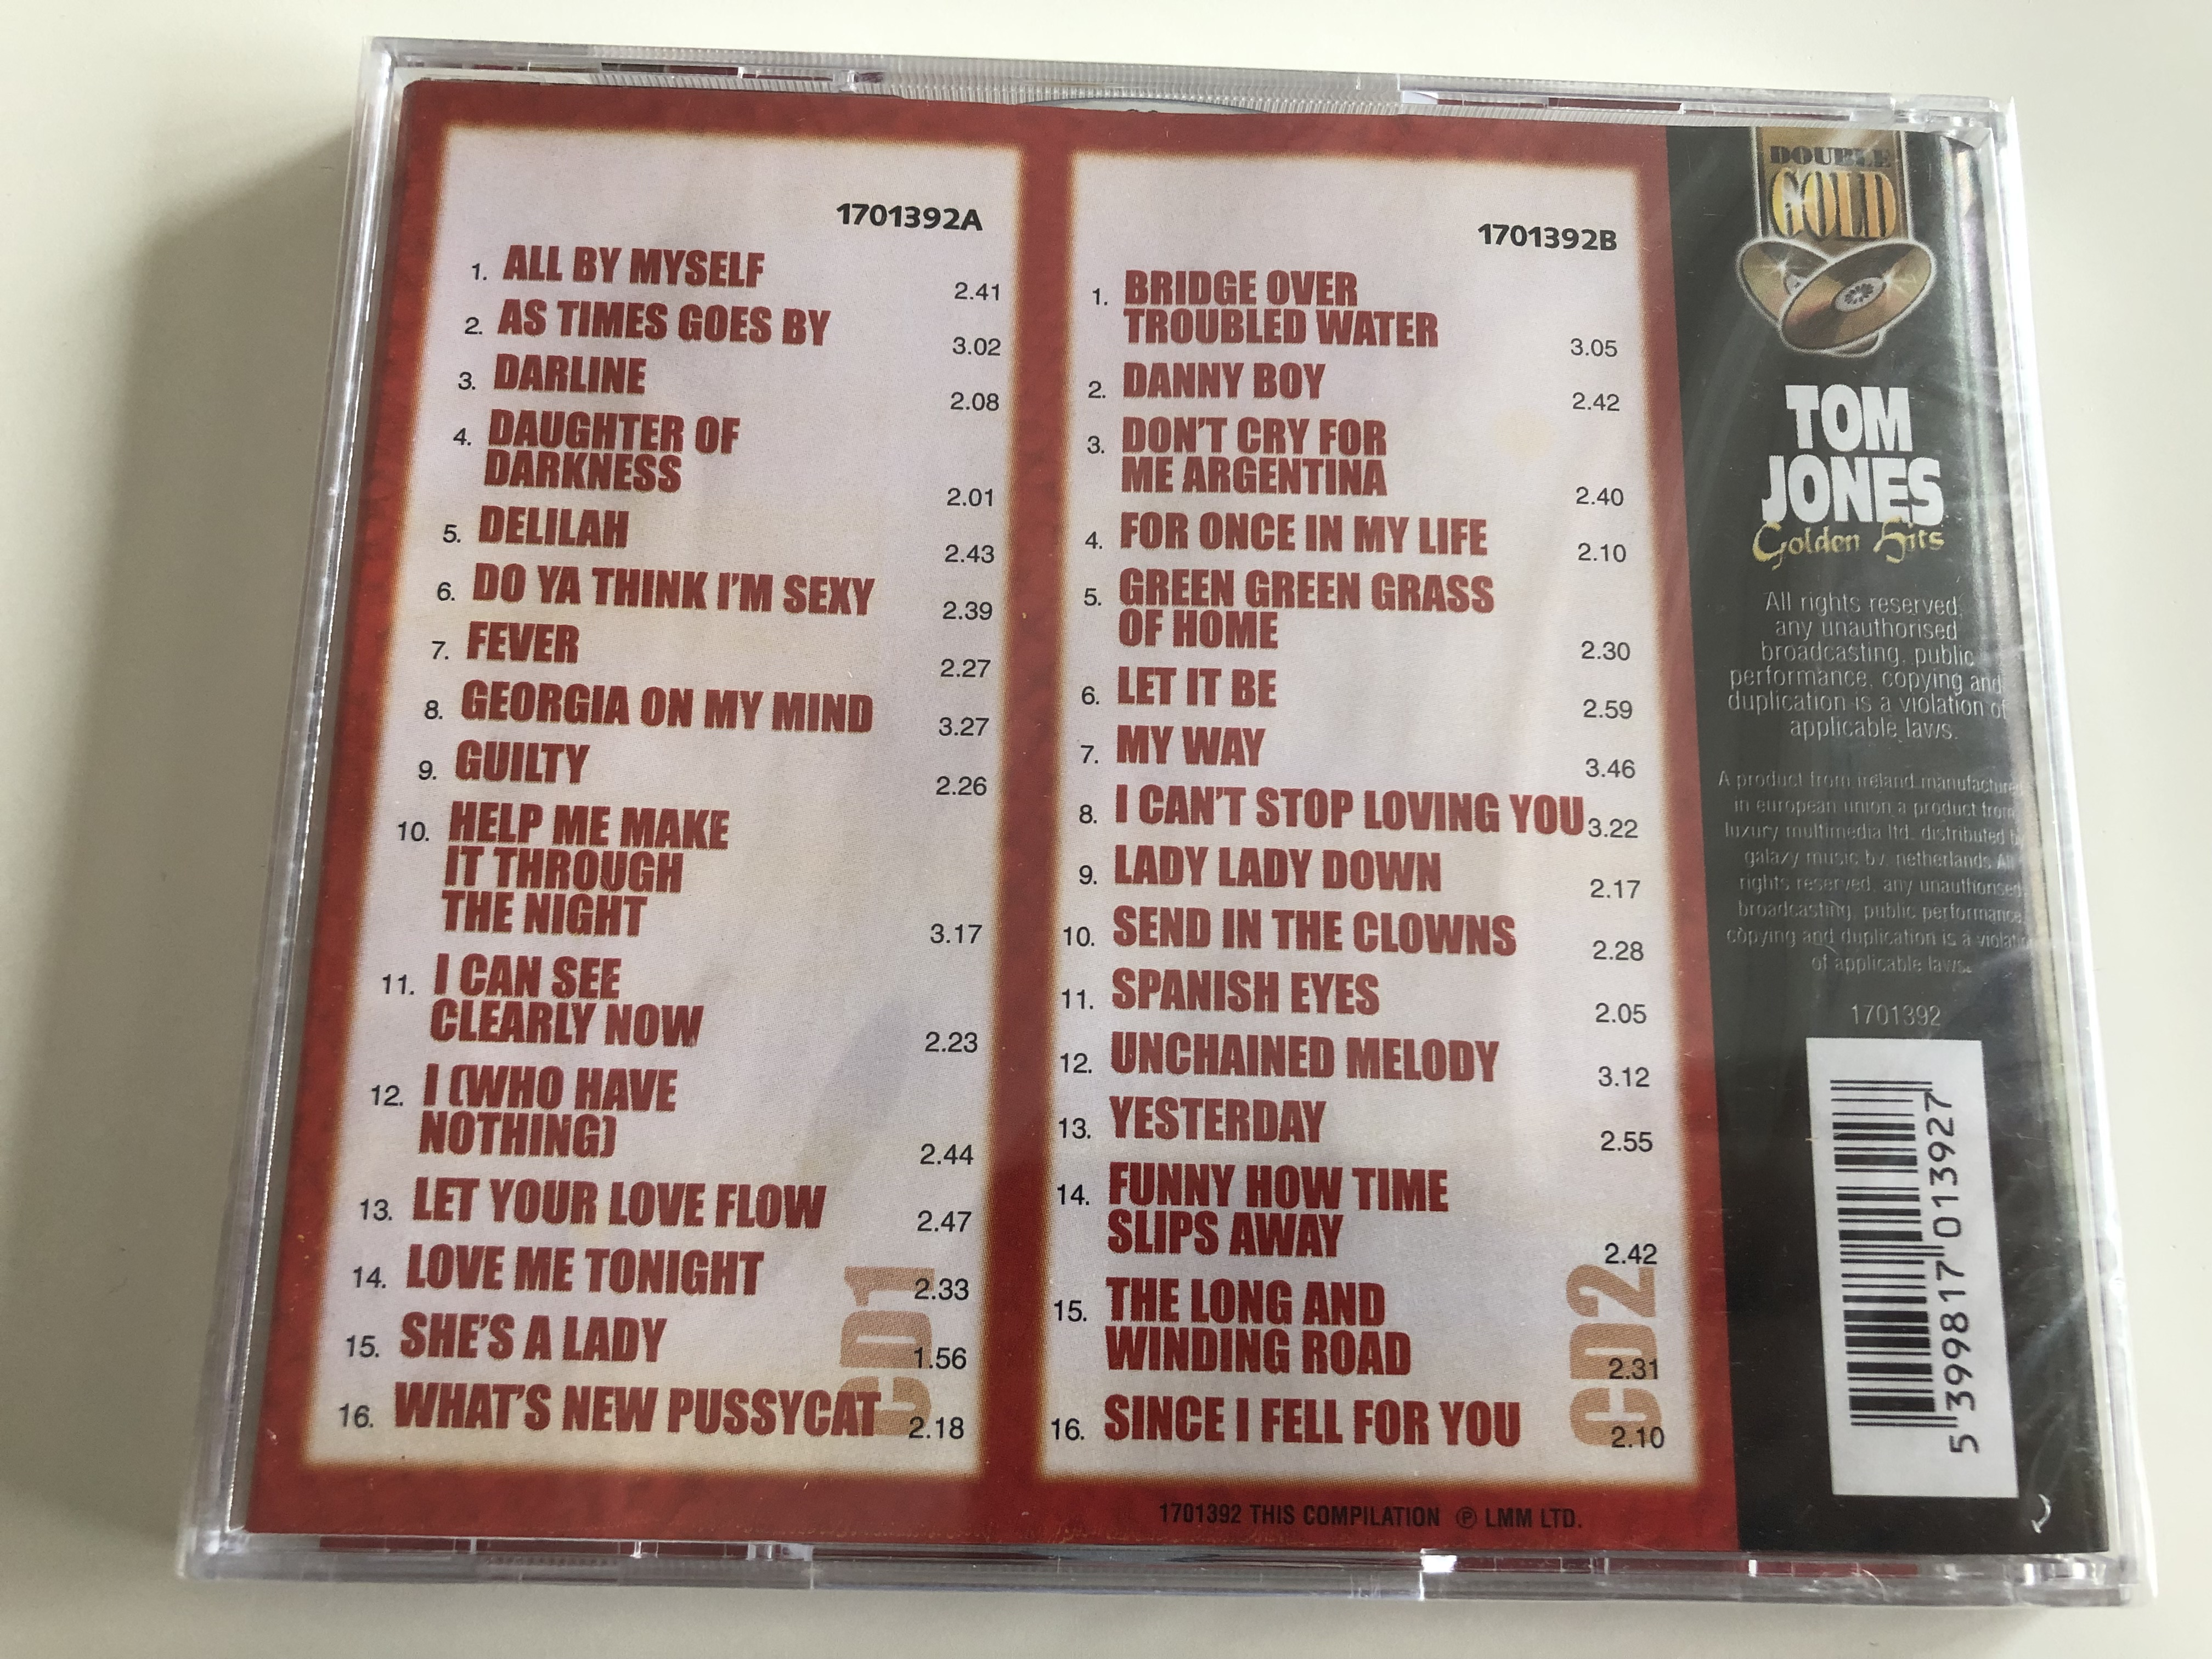 tom-jones-golden-hits-green-green-grass-of-home-i-who-have-nothing-she-s-a-lady-double-gold-2-cd-1701392-2-.jpg